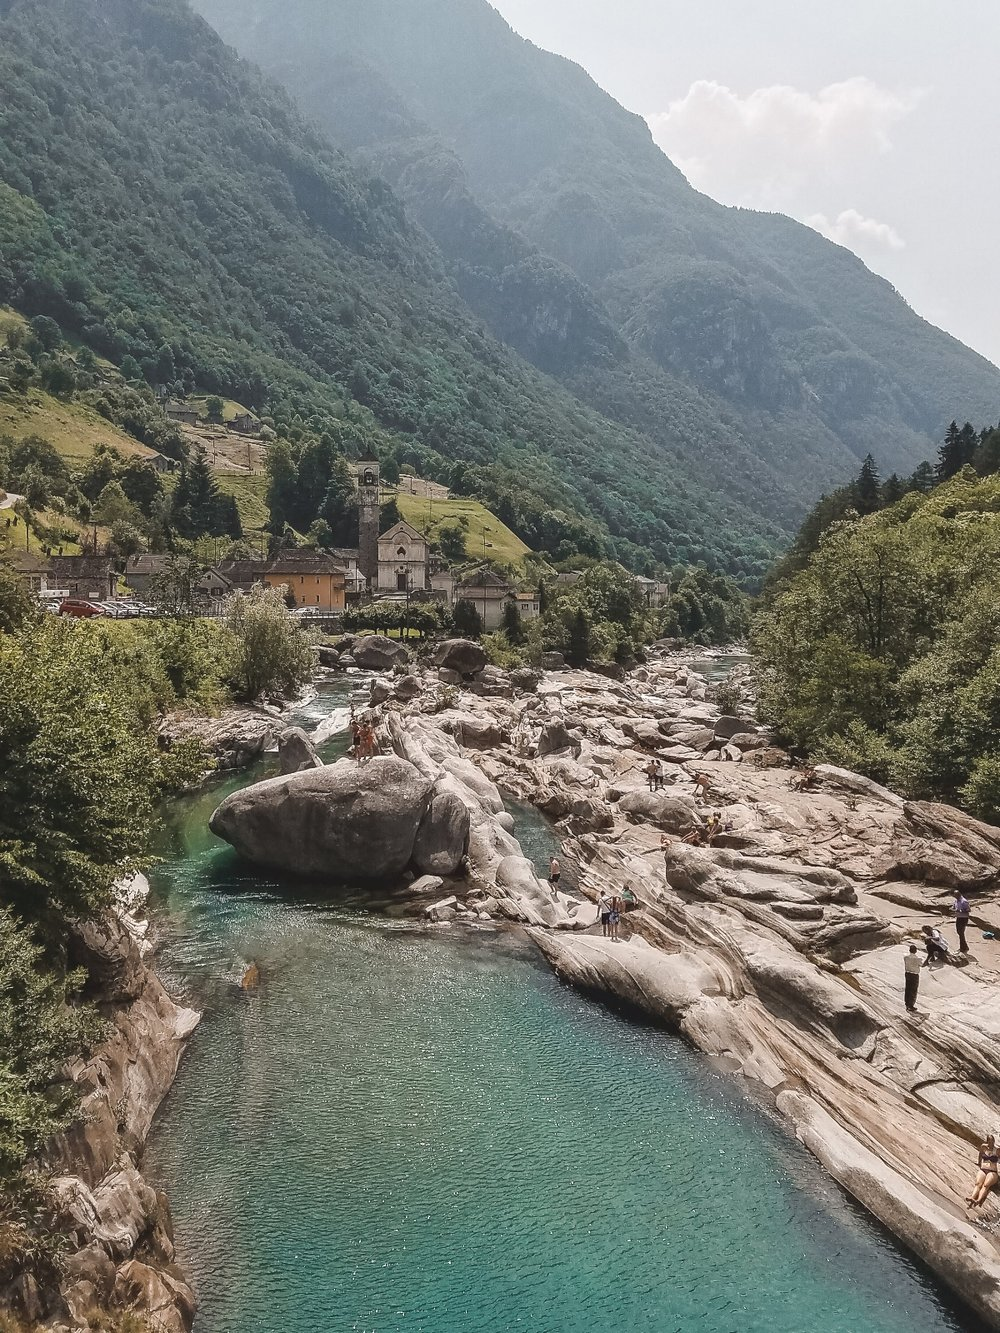 Valle Verzasca Switzerland has crystal clear waters with an emerald hue that flow along smoothed rocks.